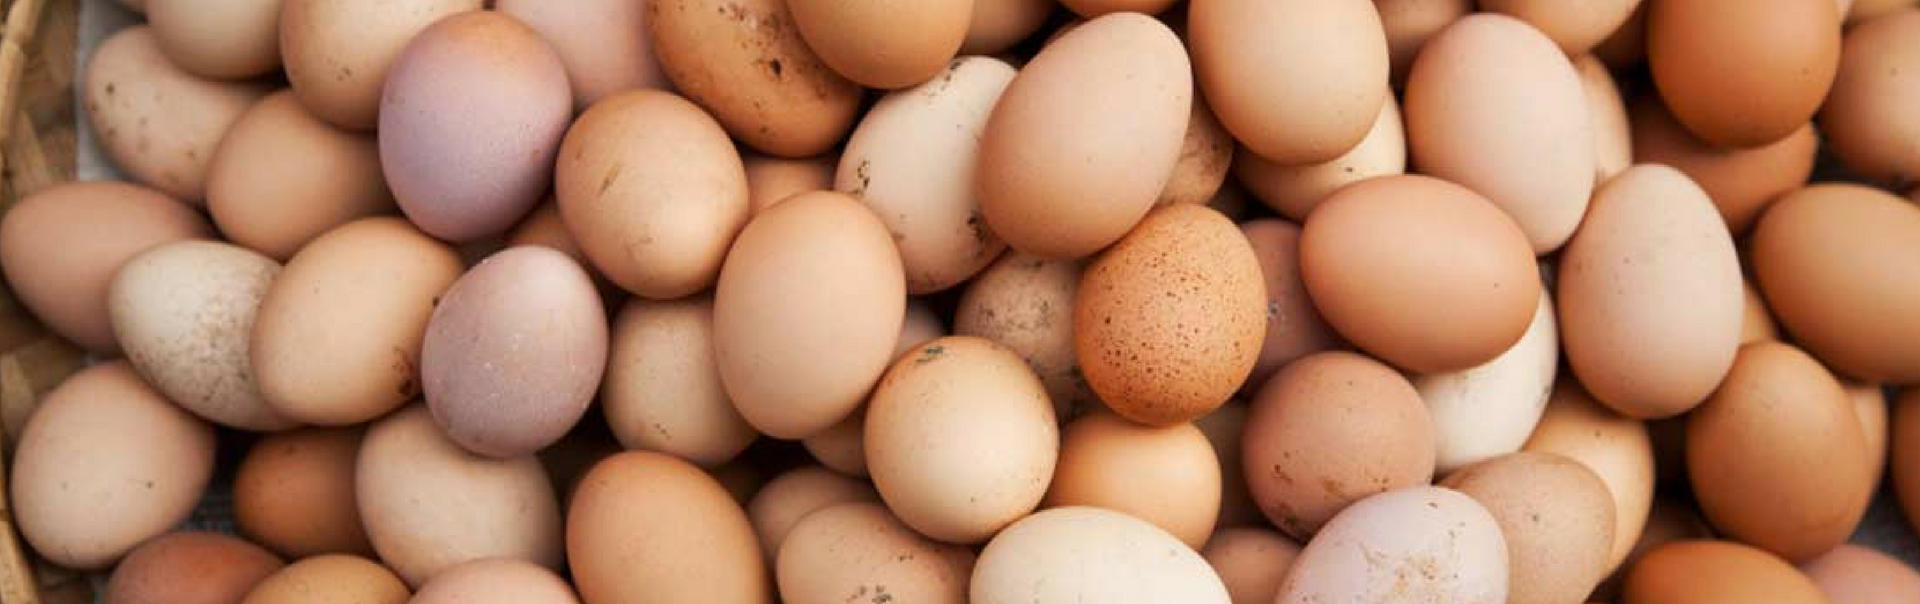 Why You Should Include Eggs In Your Diet